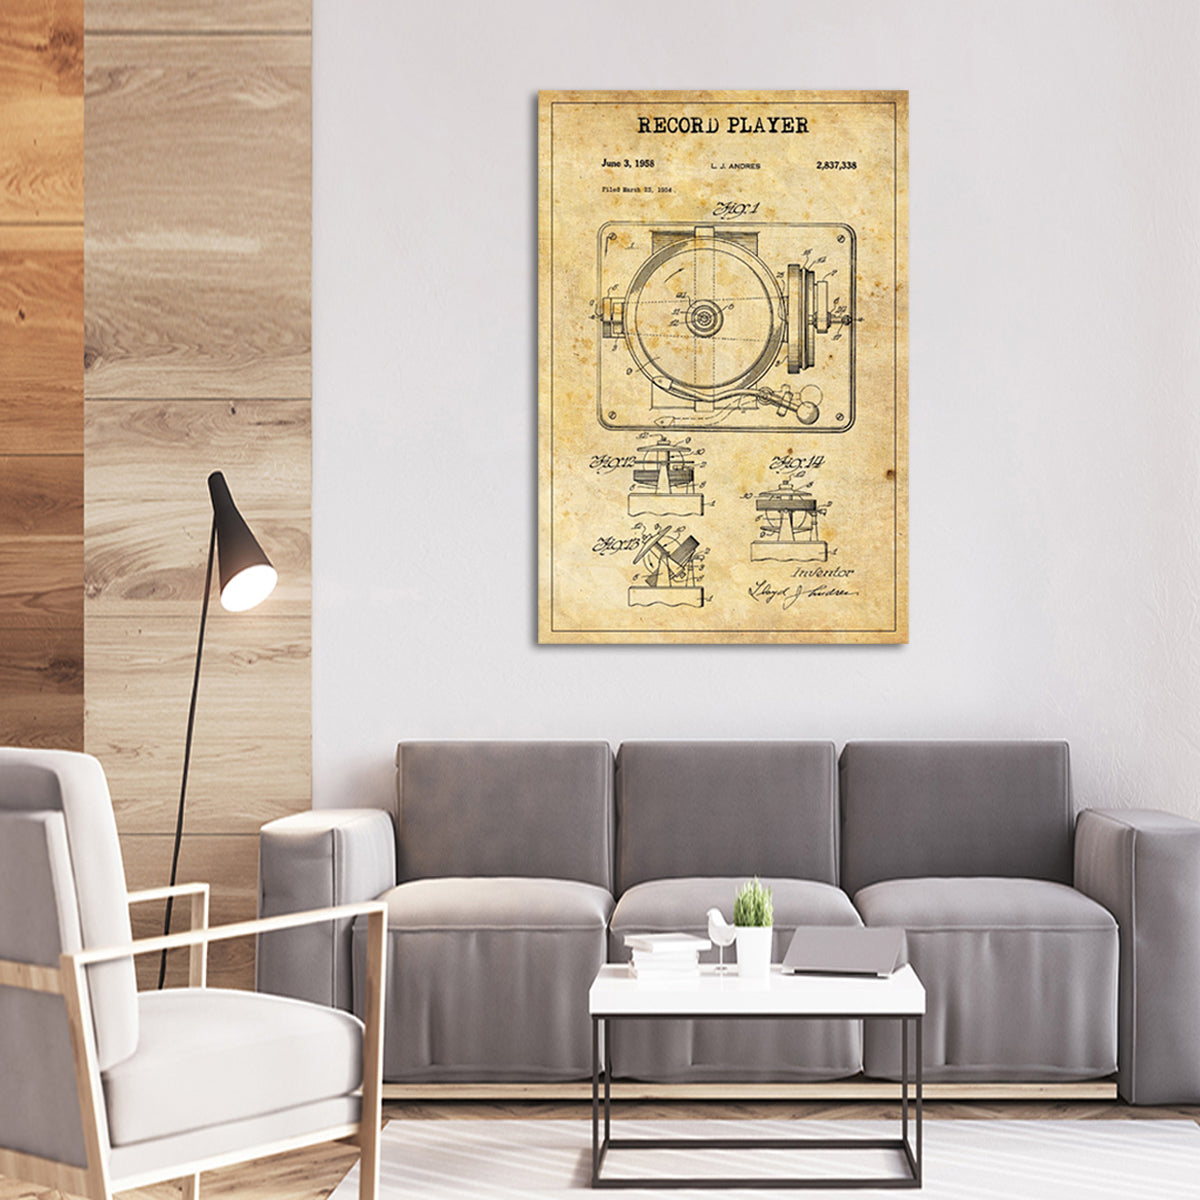 Record Player Patent Canvas Wall Art | ElephantStock